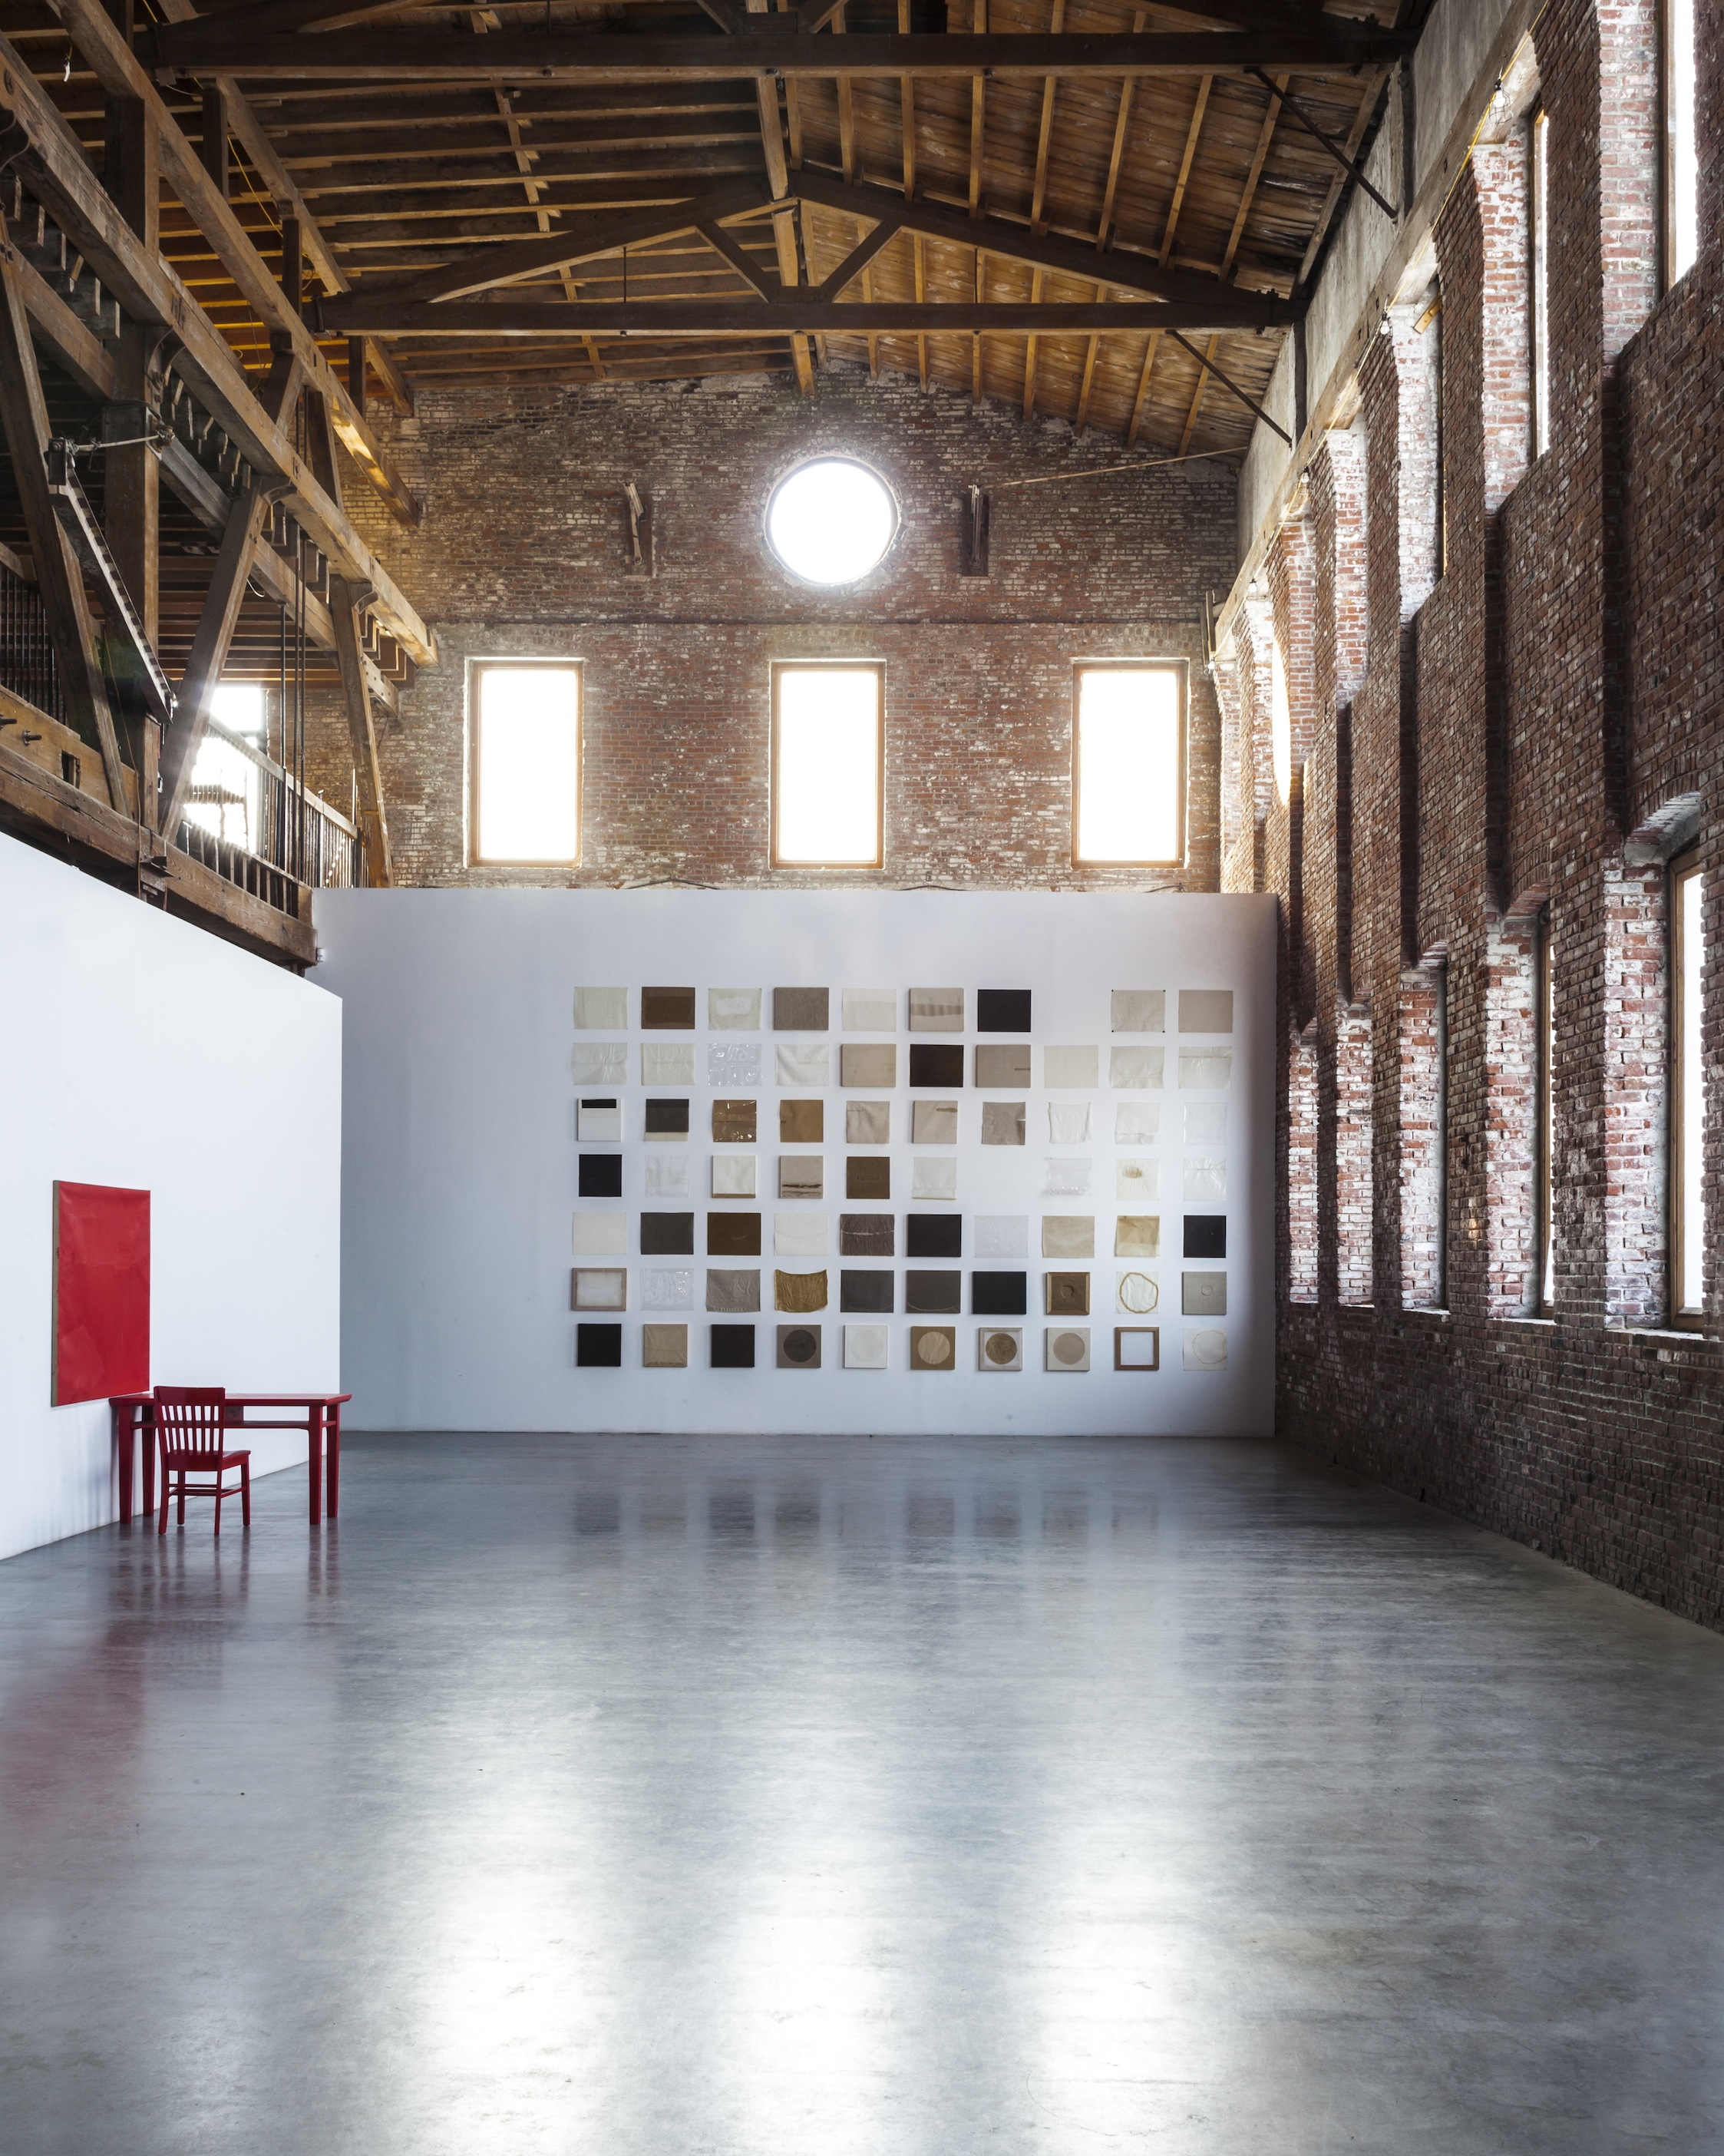 Dale Henry installation view at Pioneer Works, 2014.